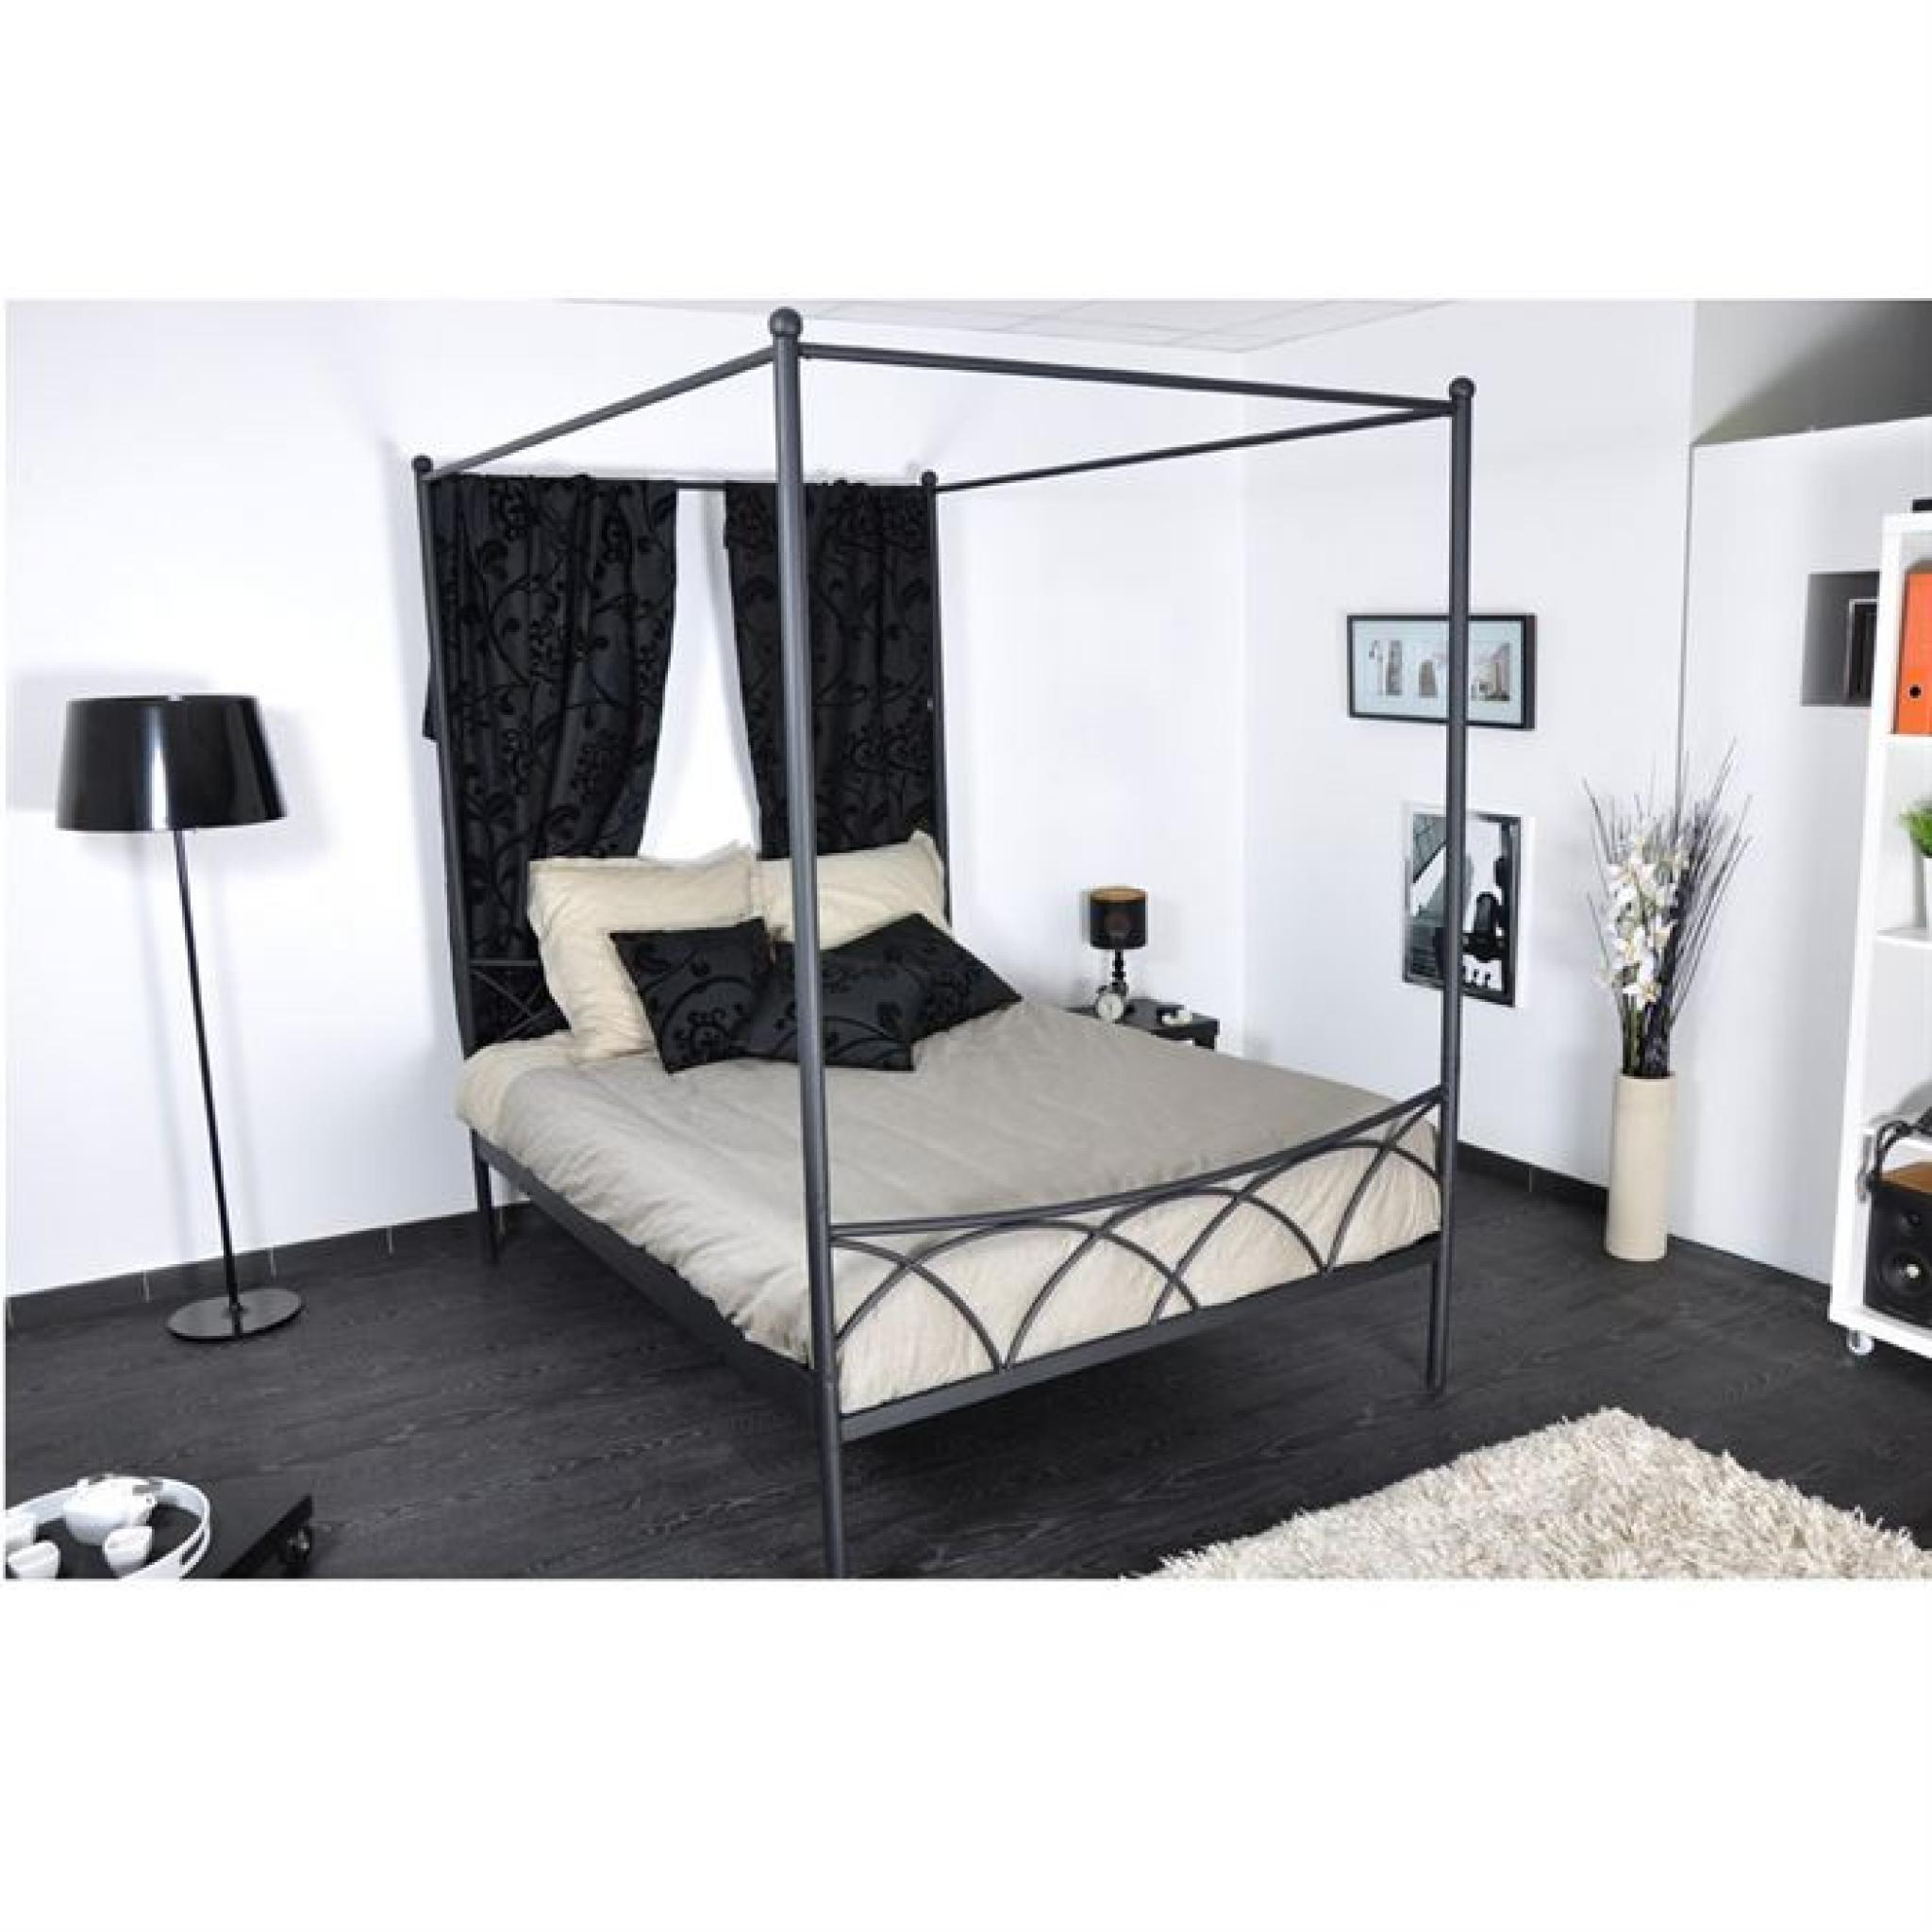 sweet lit 160x200 adulte baldaquin noir achat vente lit pas cher couleur et. Black Bedroom Furniture Sets. Home Design Ideas